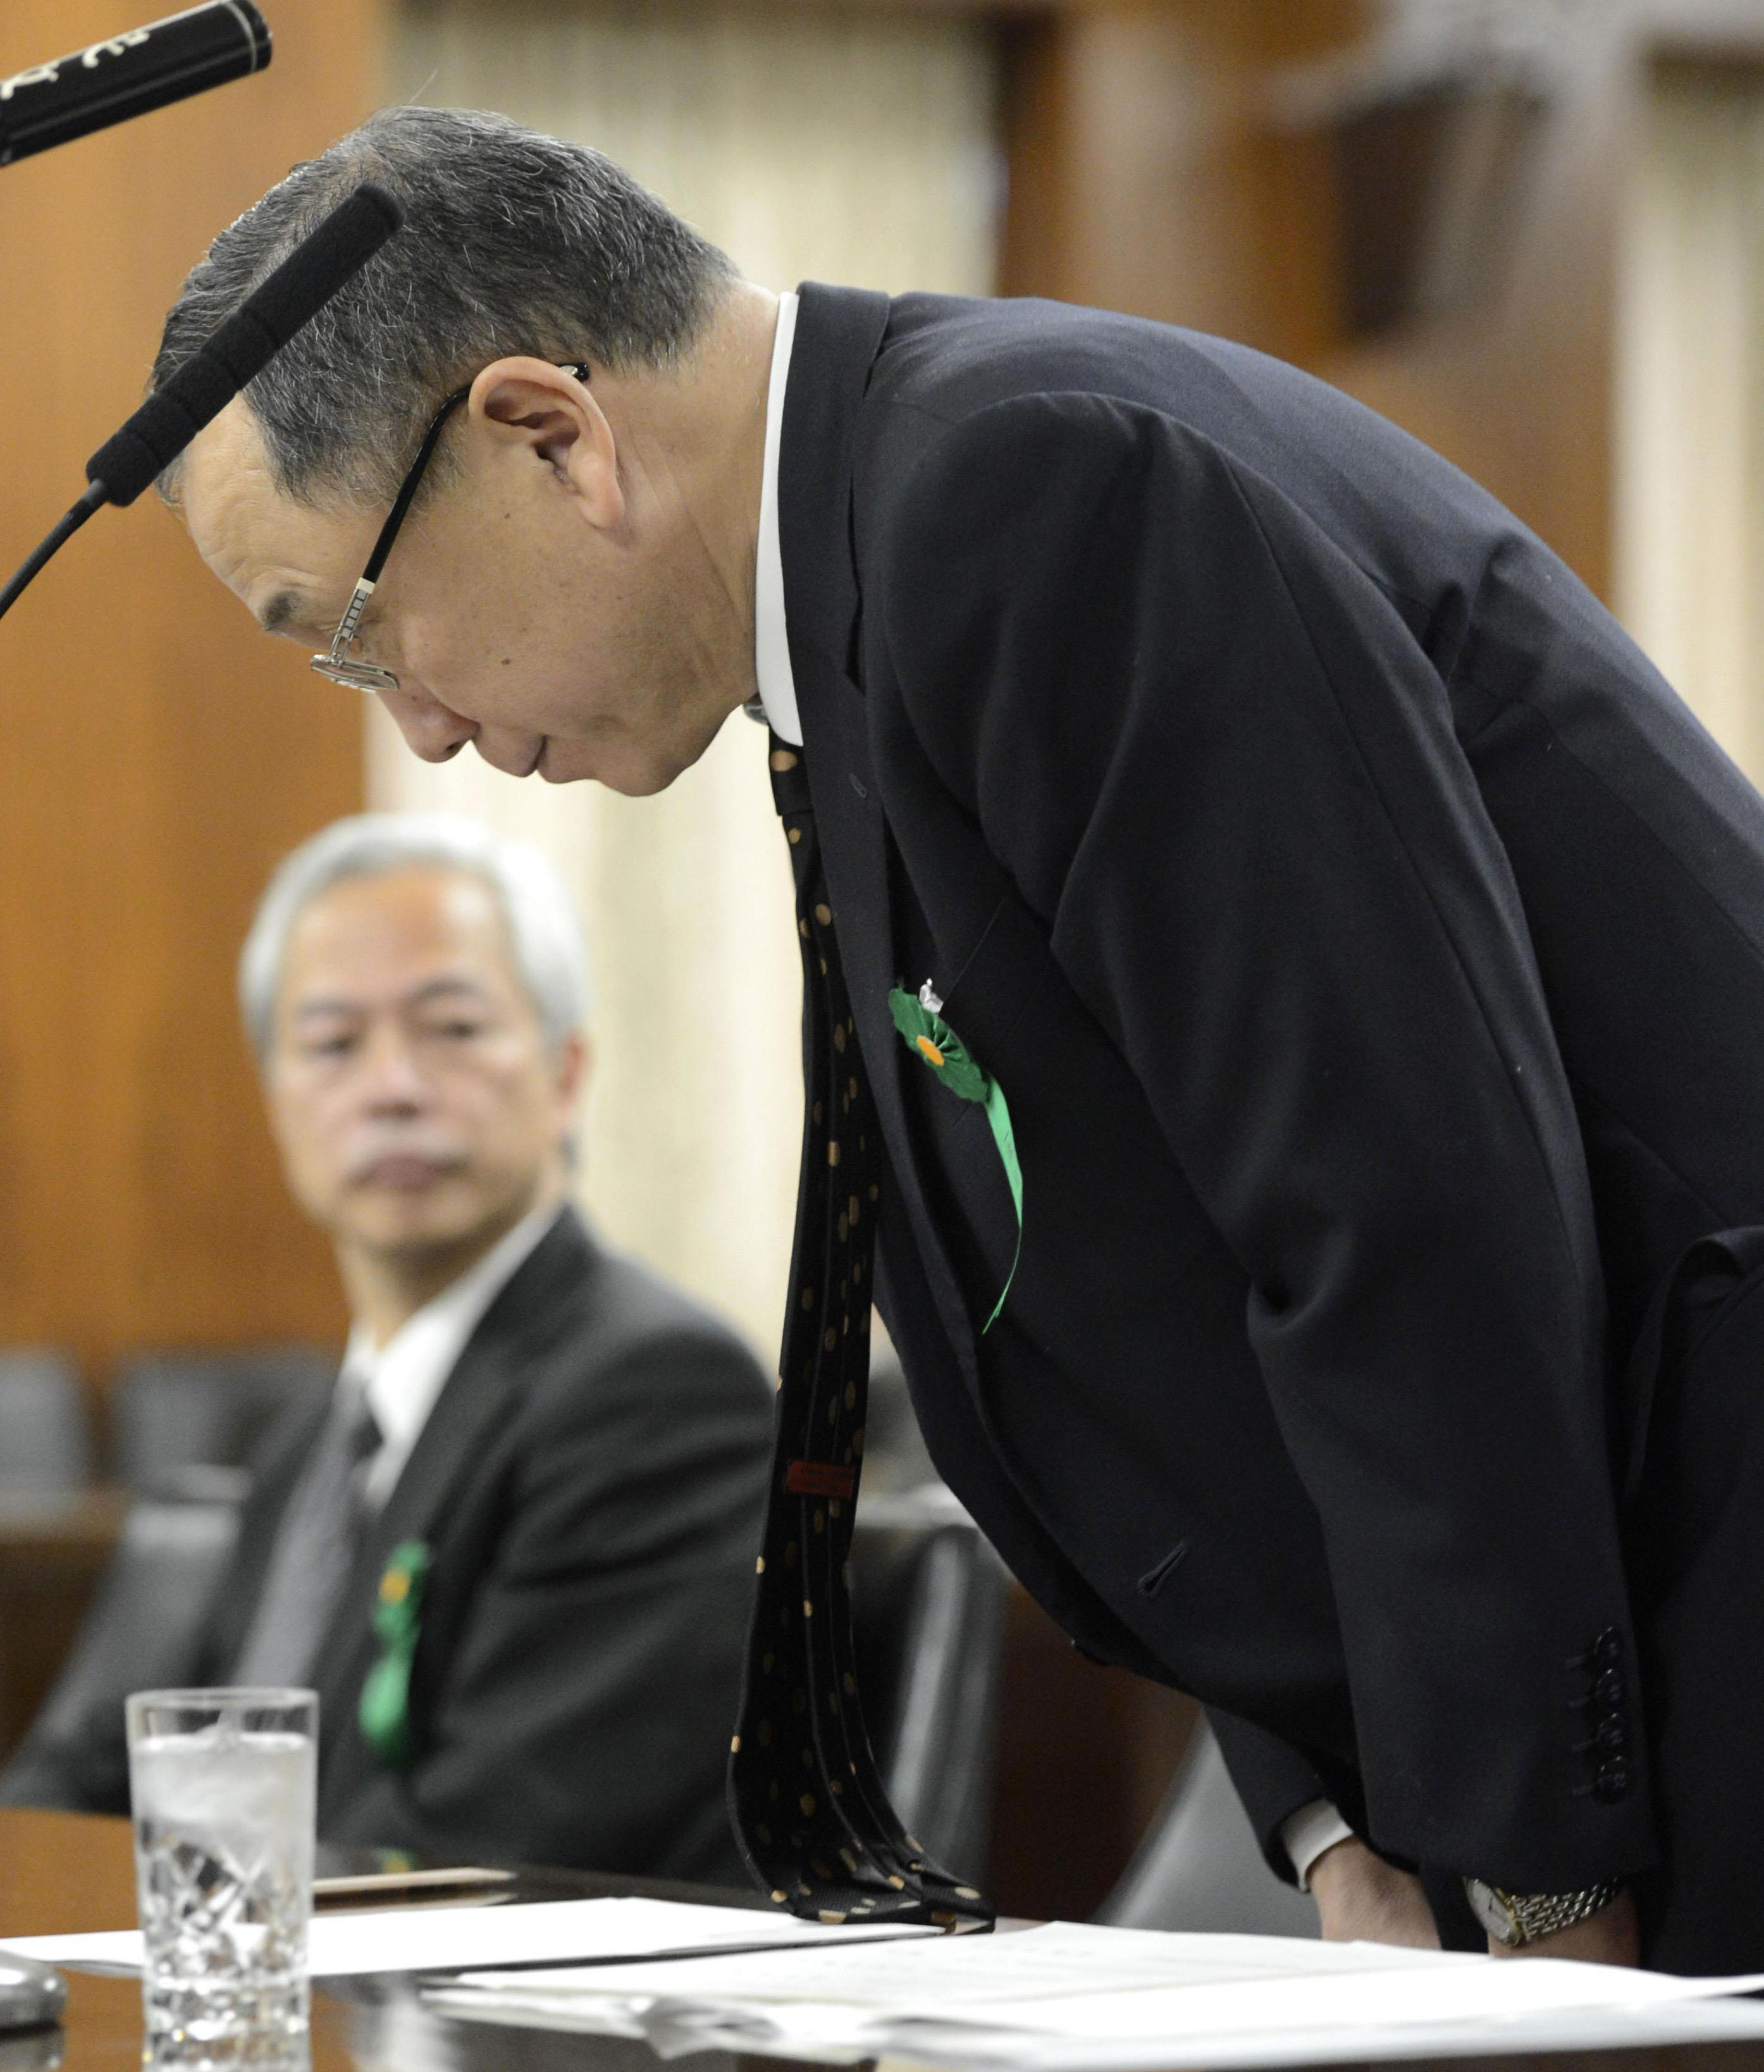 Denying complicity: AIJ Investment Advisors Co. President Kazuhiko Asakawa bows during a meeting of the Upper House Financial Affairs Committee on Tuesday. | KYODO